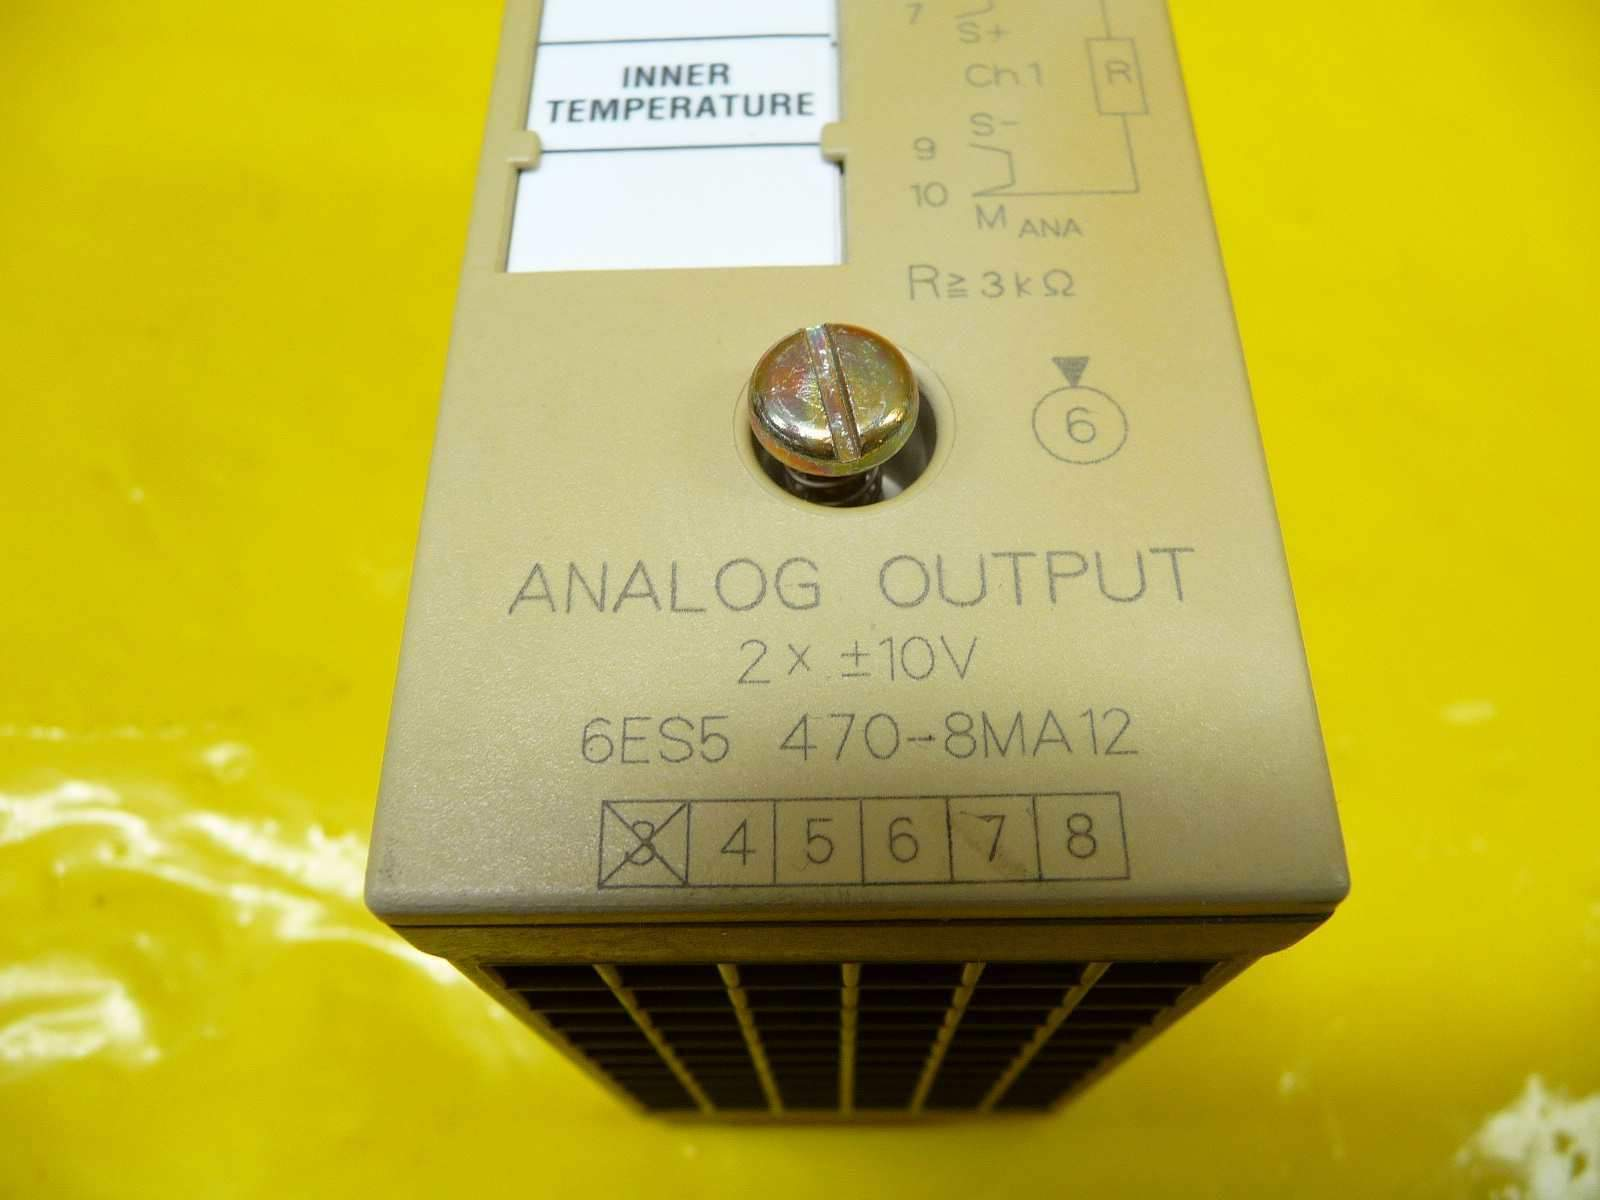 Siemens 6ES5 470-8MA12 Analog Output SIMATIC S5 Used Working